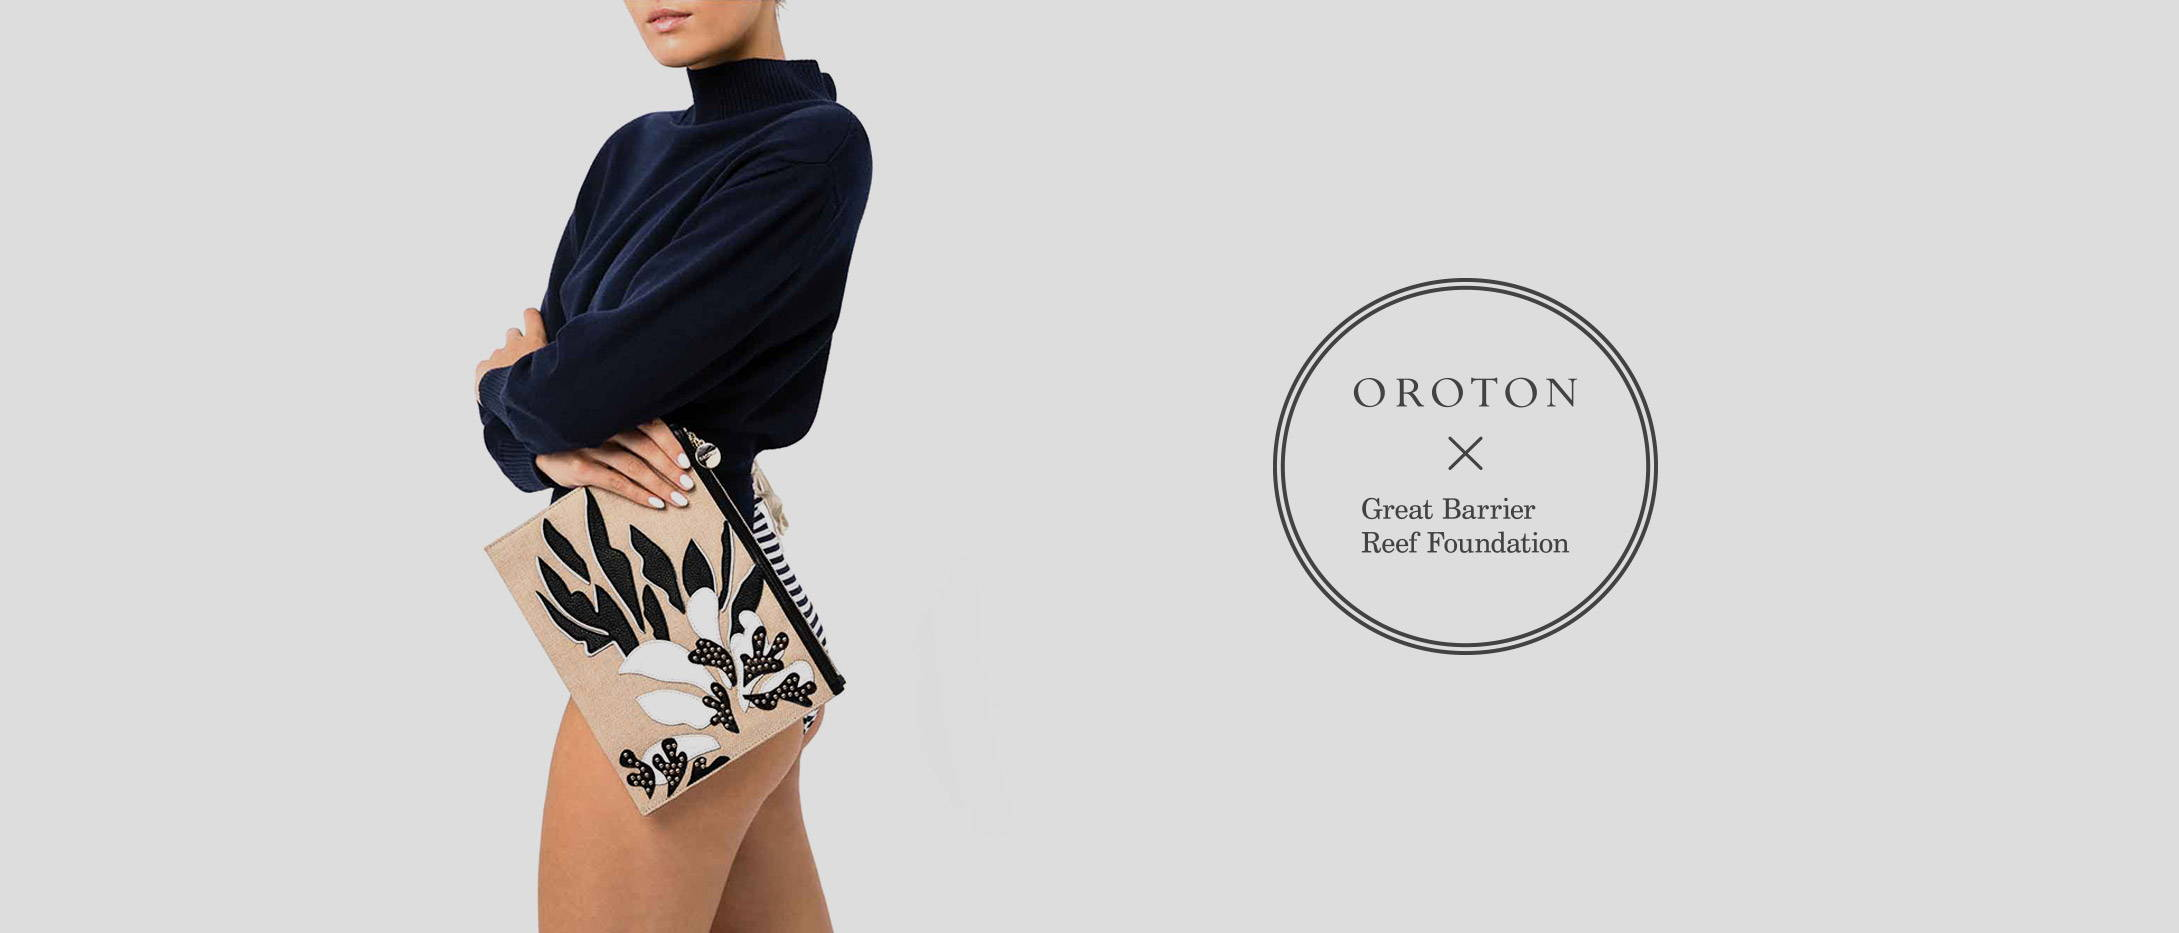 great barrier reef ss17 oroton partnership